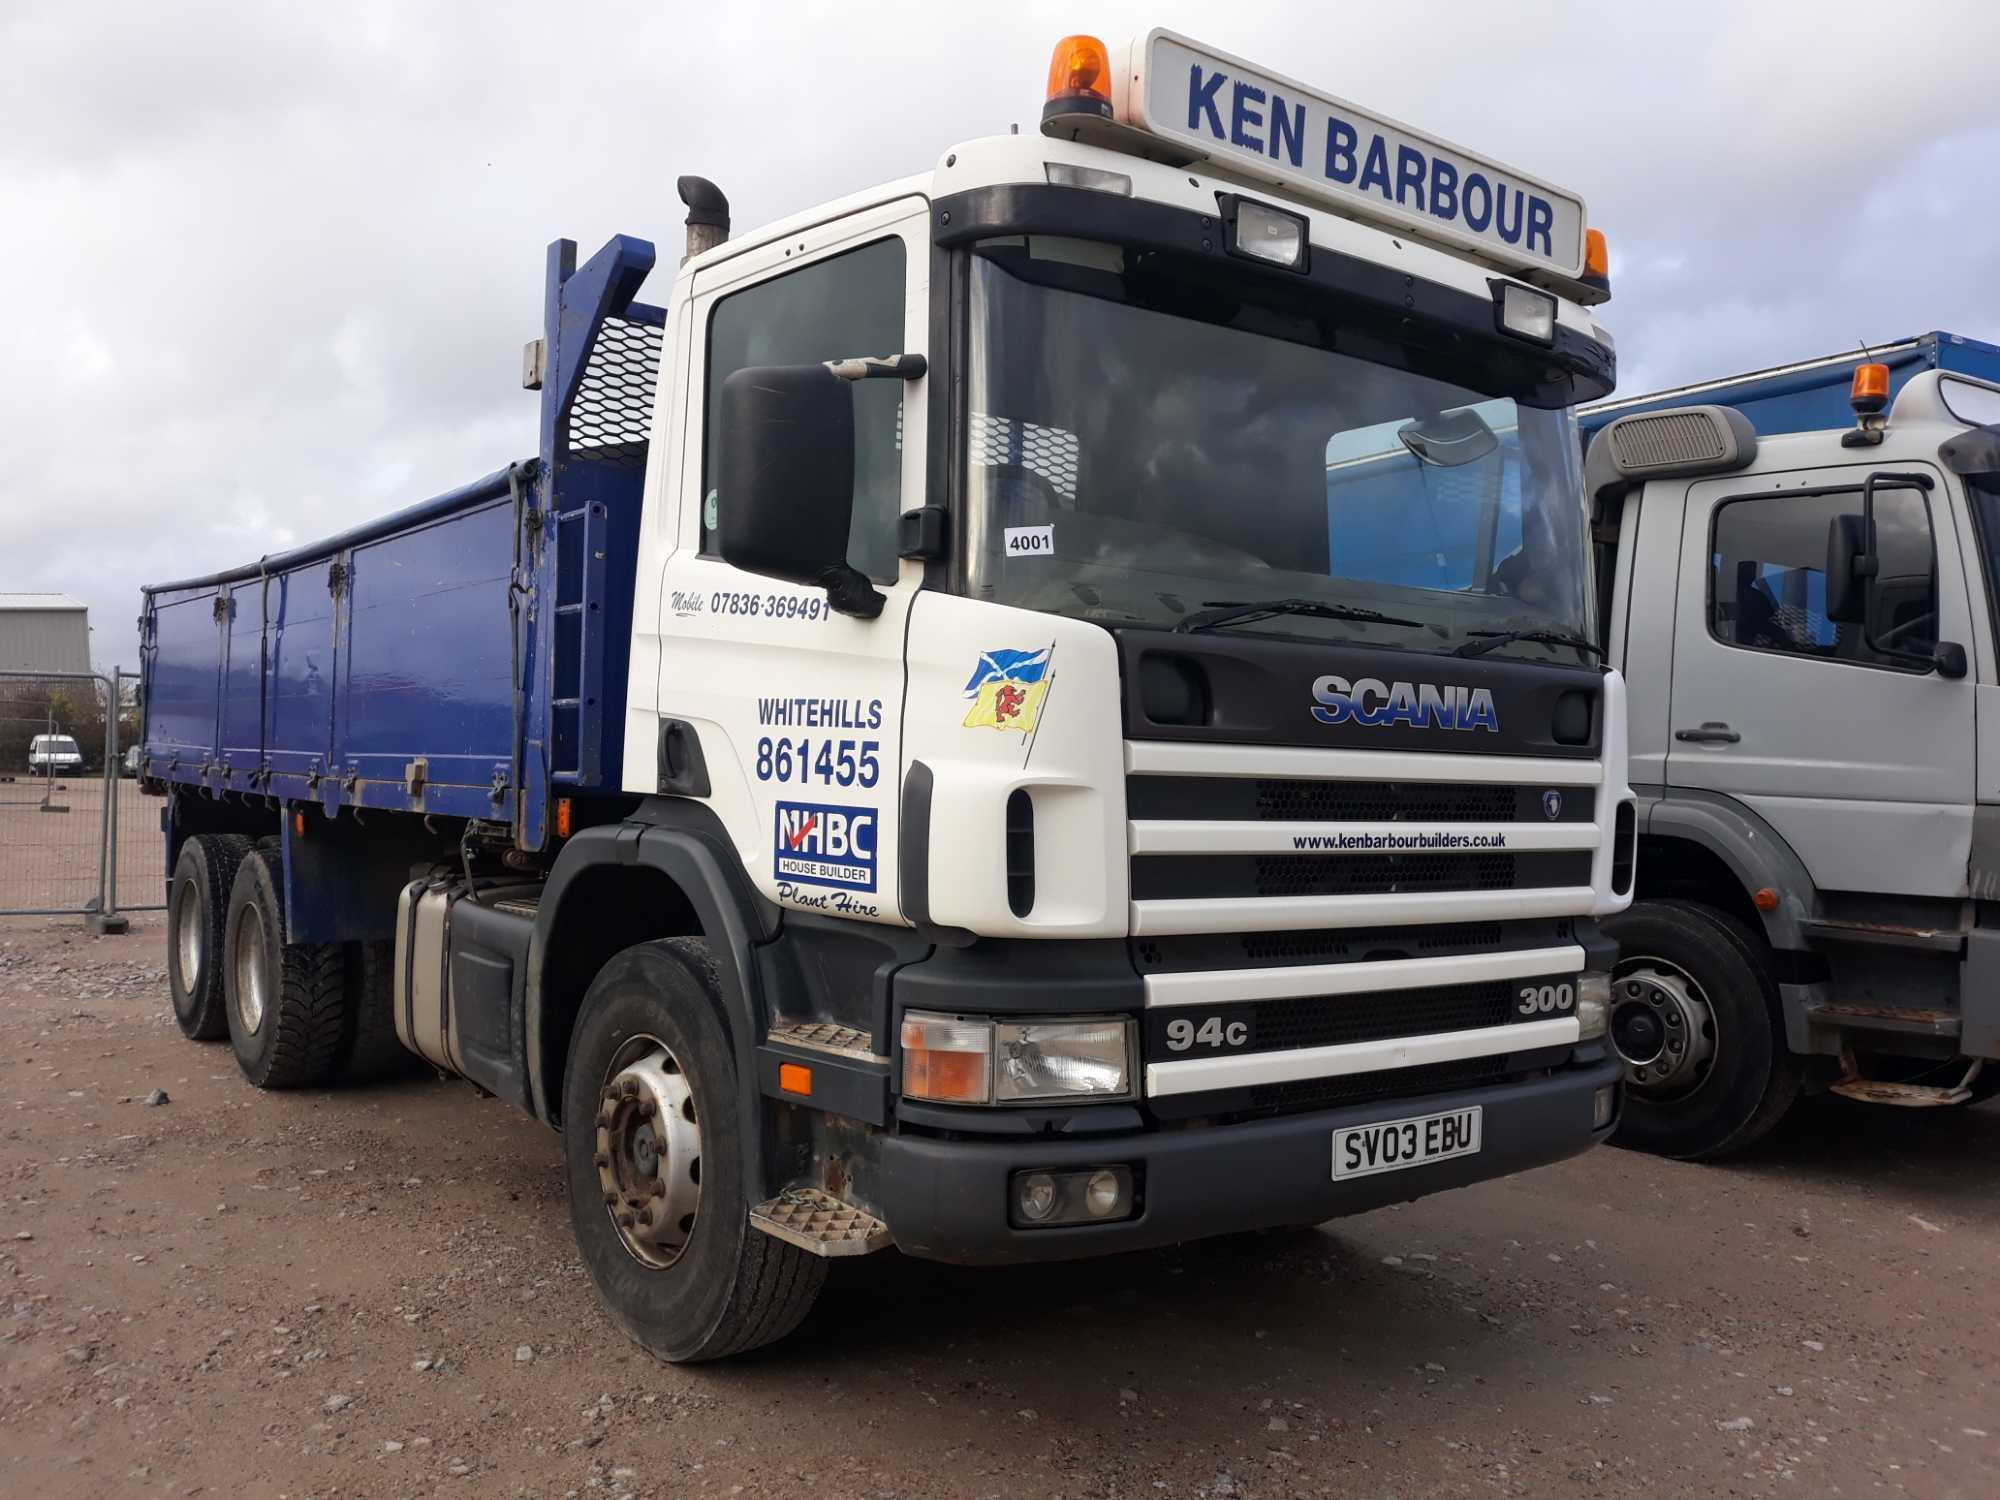 Lot 4001 - Scania 4-srs C-class P94 Cb 6x4 300 Day - 8970cc 2 Door Truck